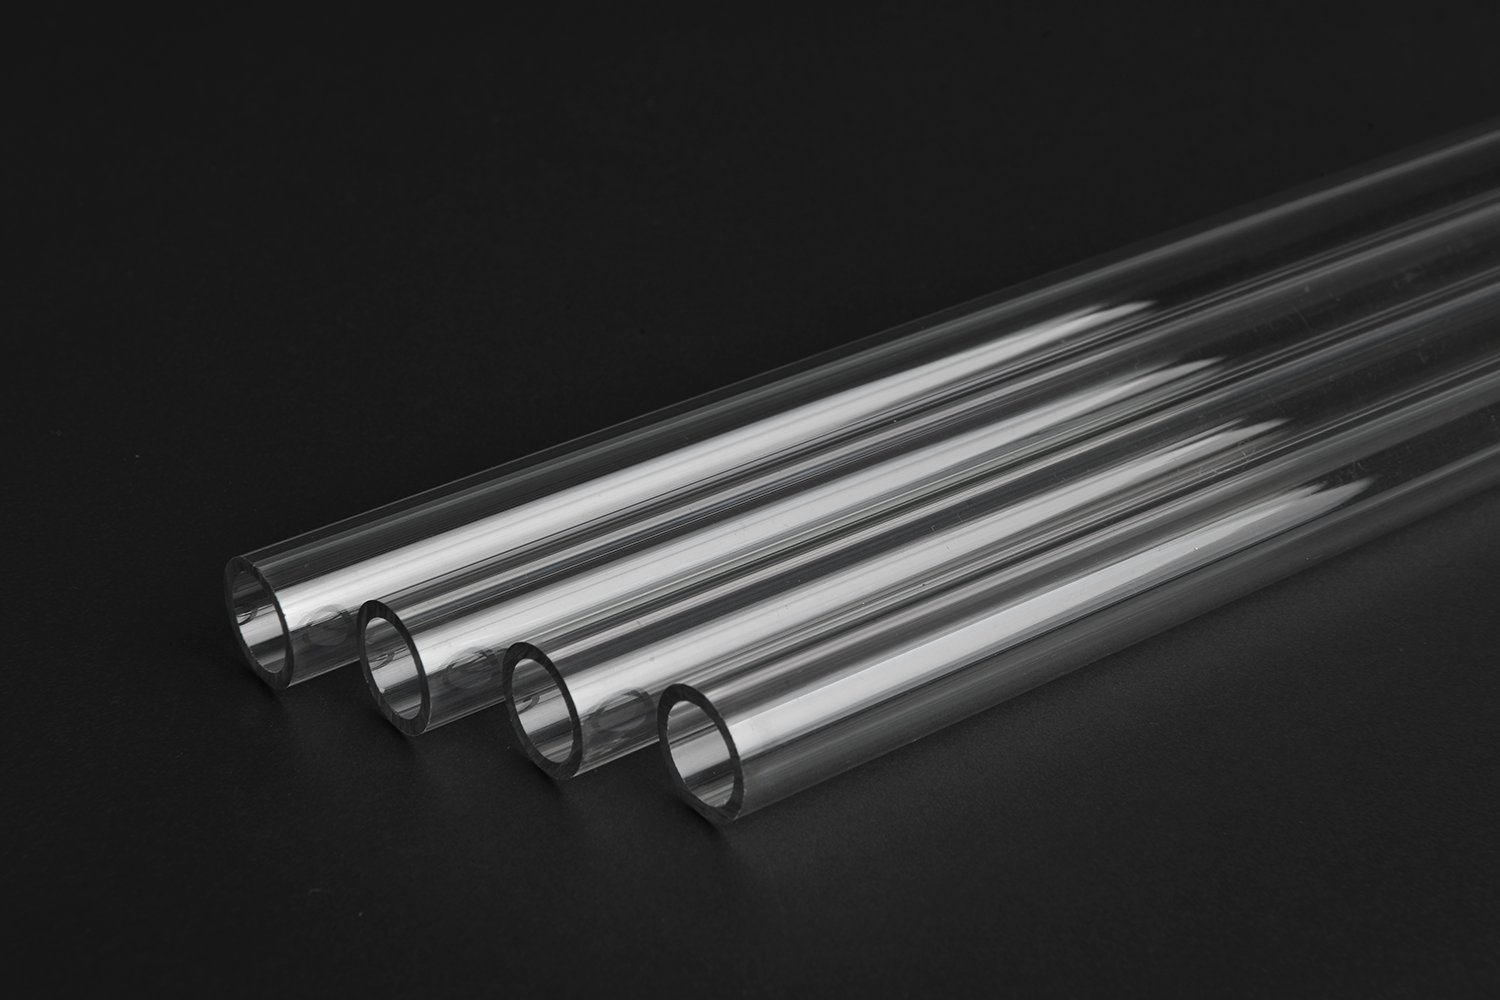 Thermaltake Pacific DIY LCS 500mm Lengths V-Tubler PETG Hard Tubing (4-Pack) OD 16mm (5/8'') x ID 12mm (1/2'') CL-W065-PL16TR-A by Thermaltake (Image #2)